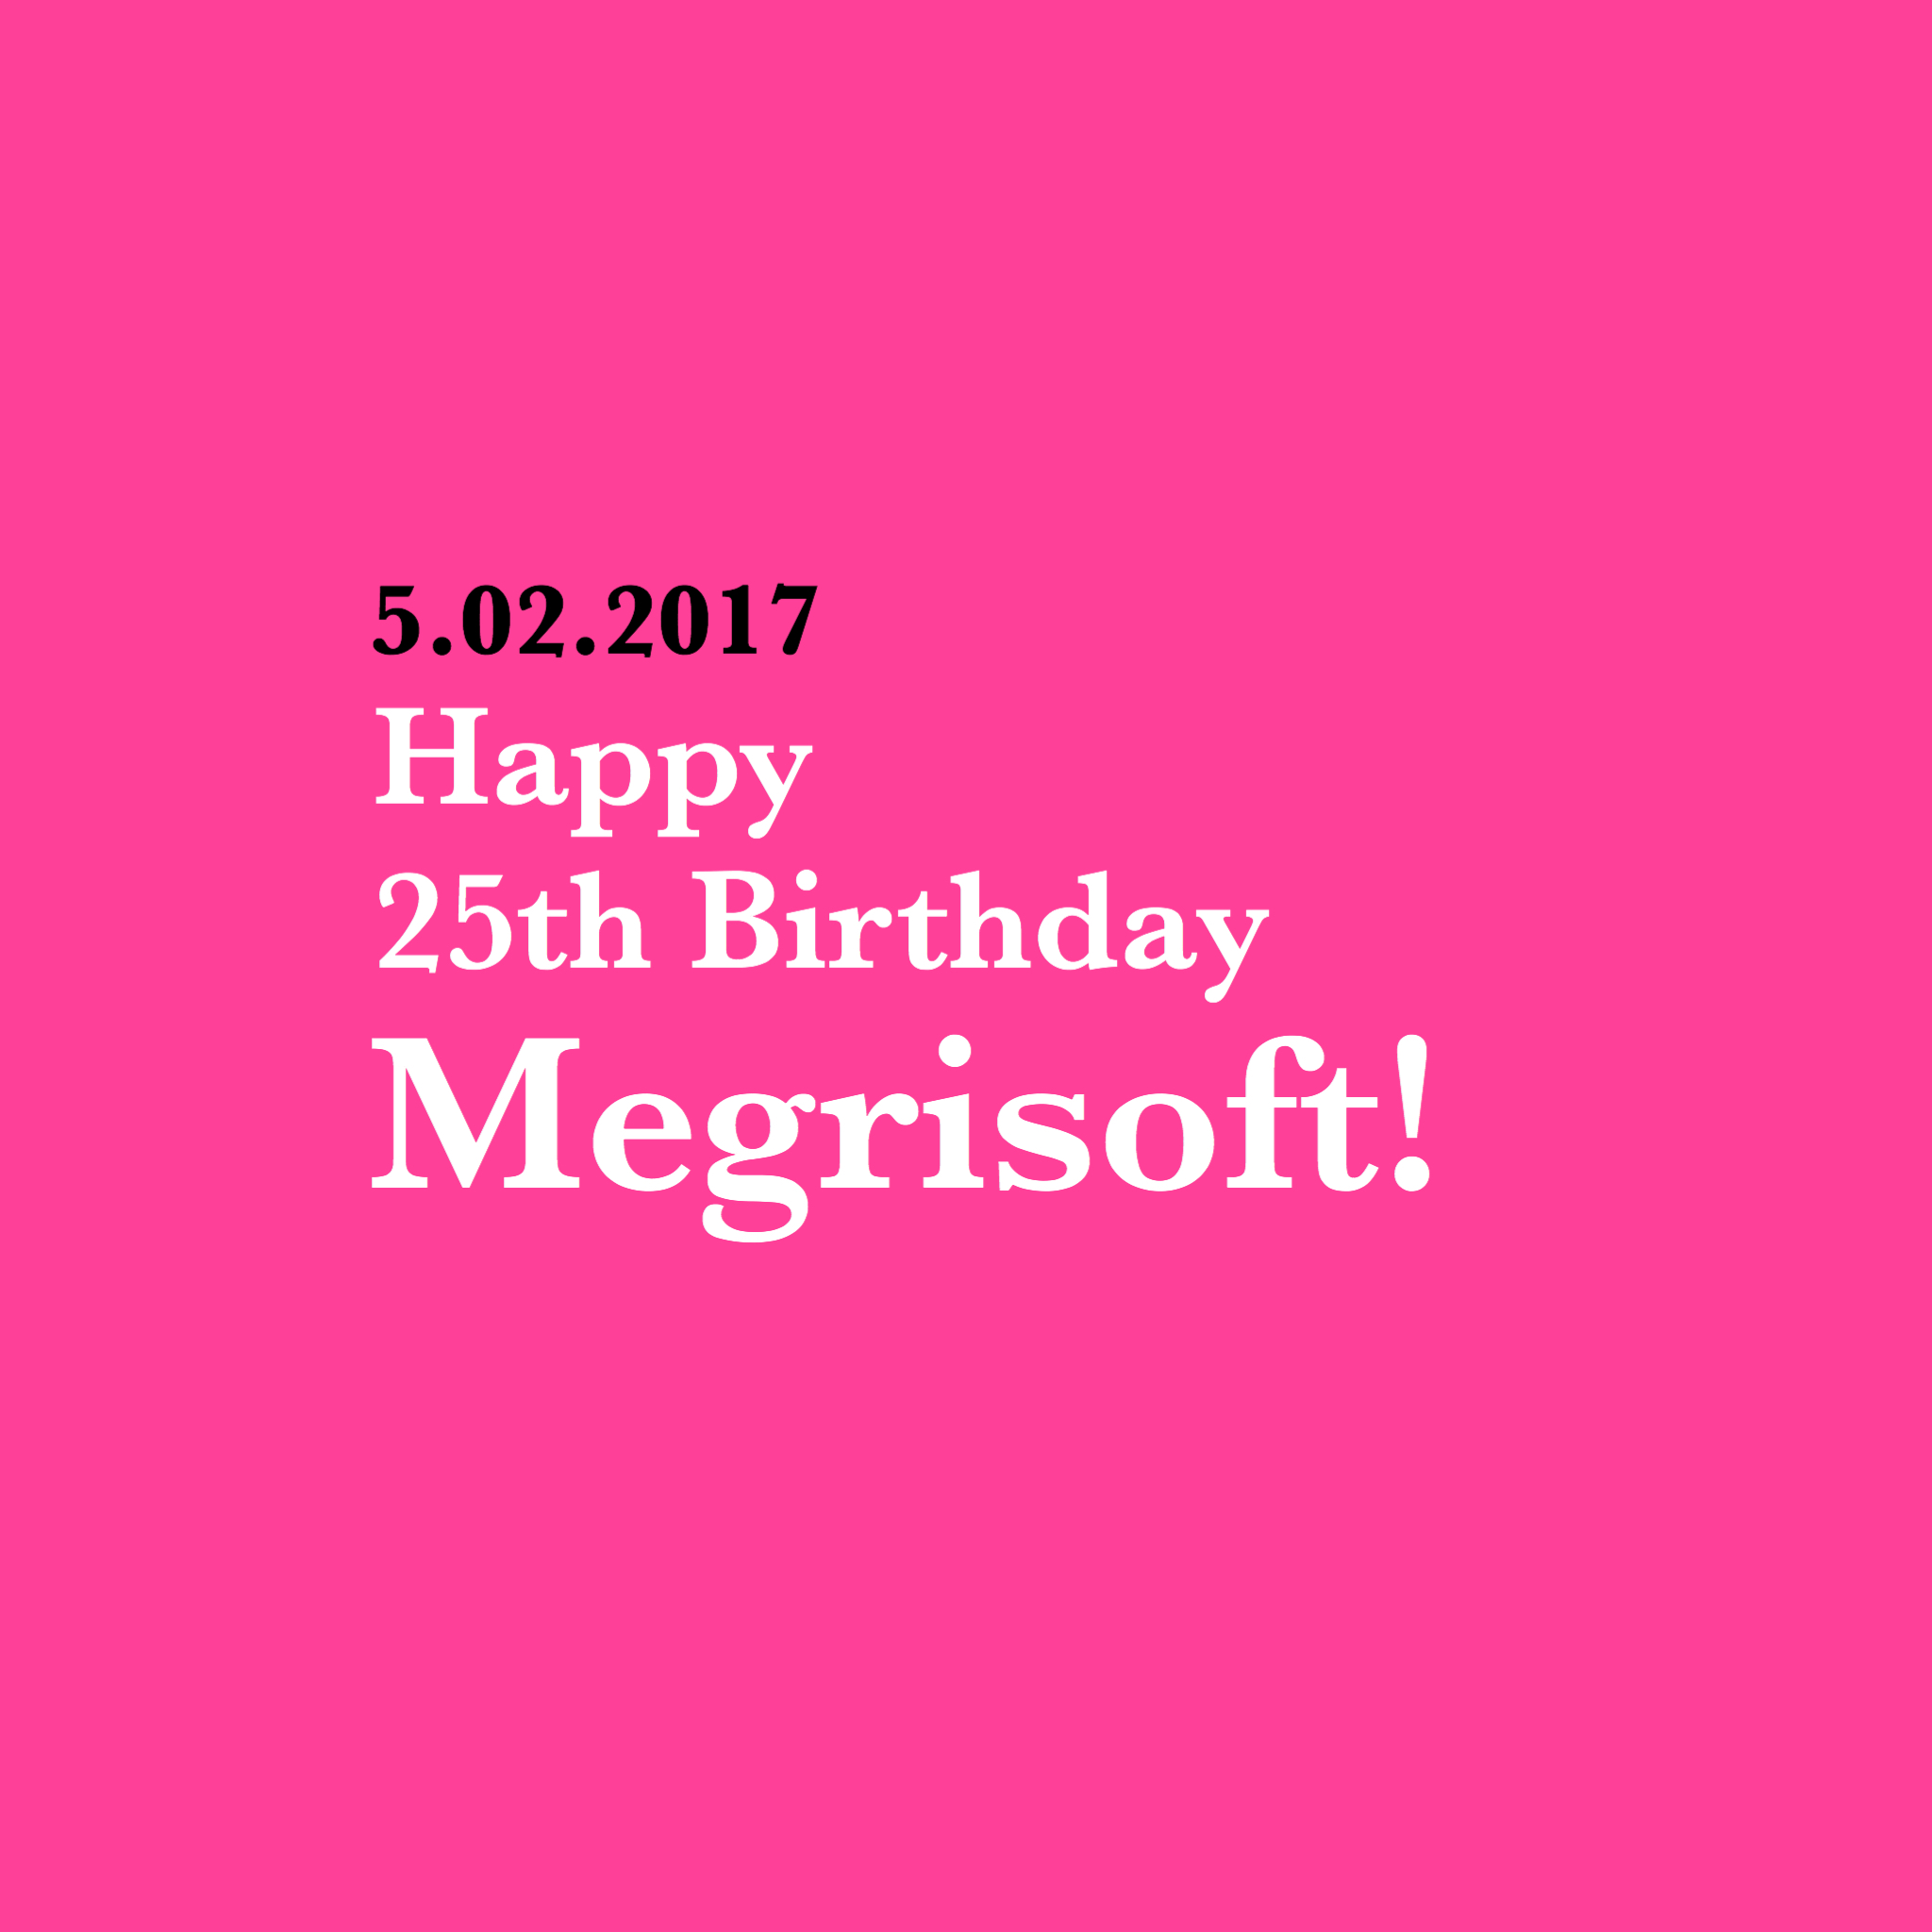 Megrisoft's 25th Birthday